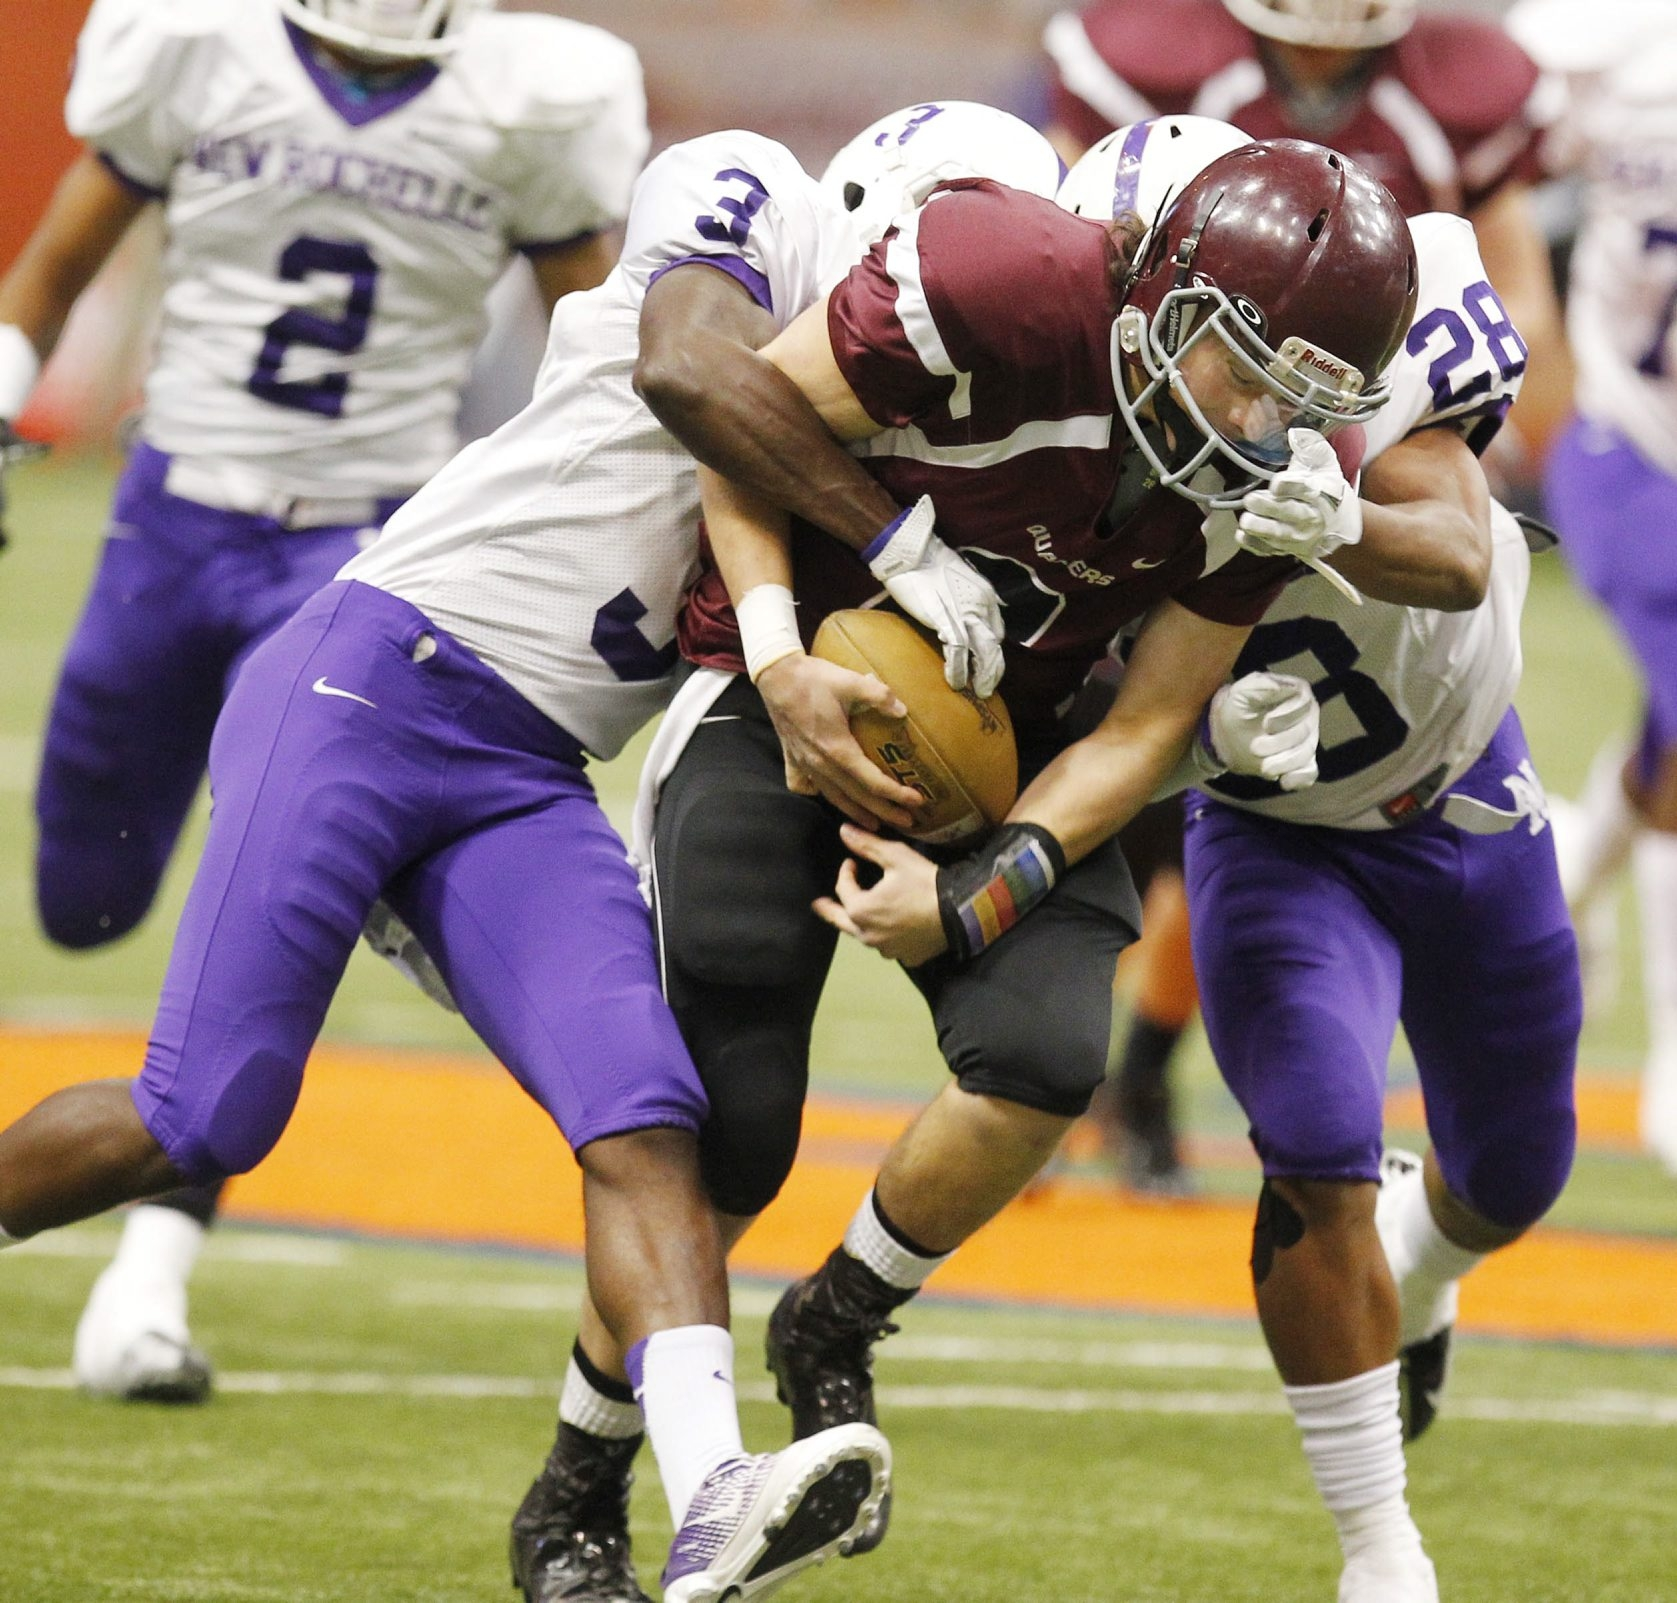 Orchard Park's Ben Holmes is tackled by New Rochelle's Shayne Forbes, right, and Jason Ceneus during Saturday's Class AA football championship.